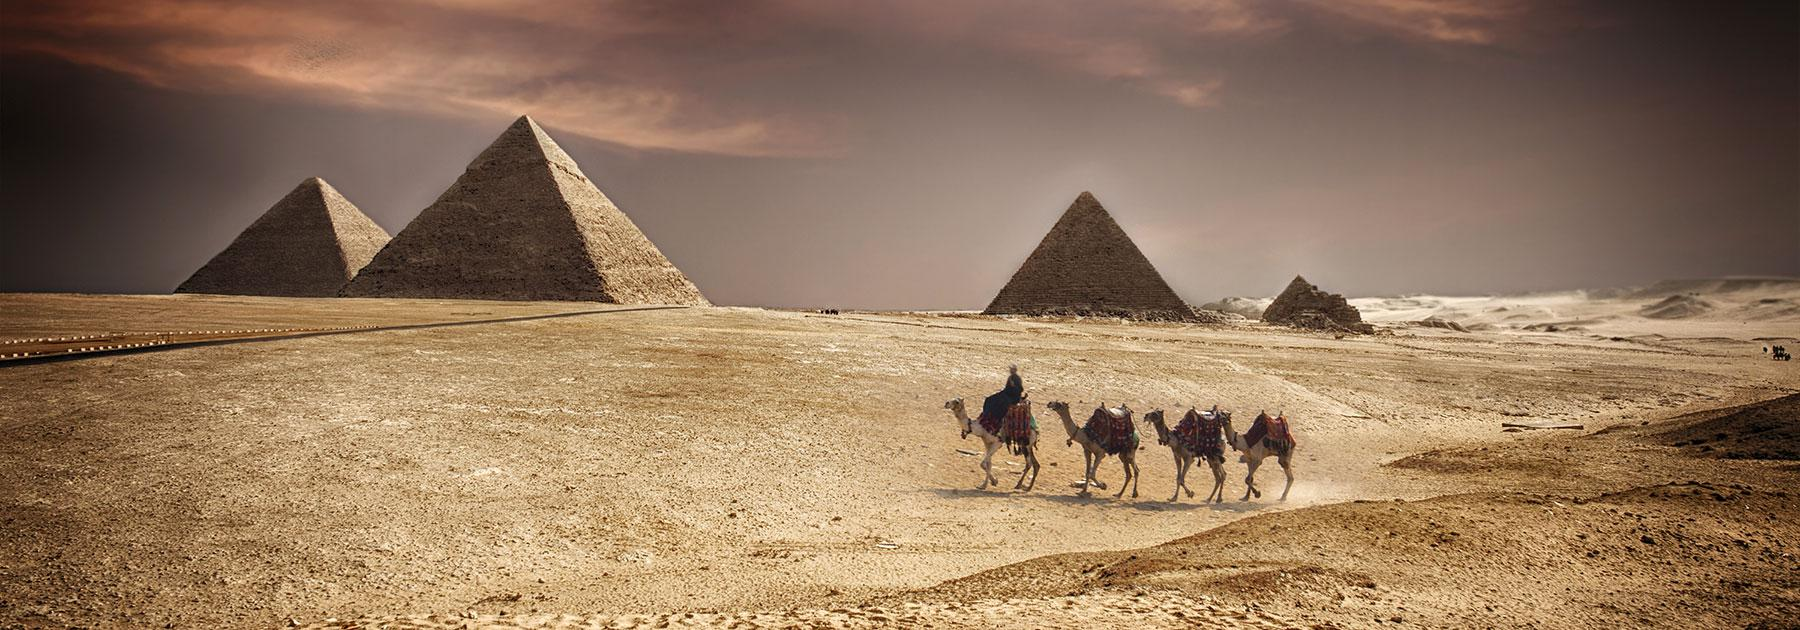 Egypt Vacations with Airfare | Trip to Egypt from go-today